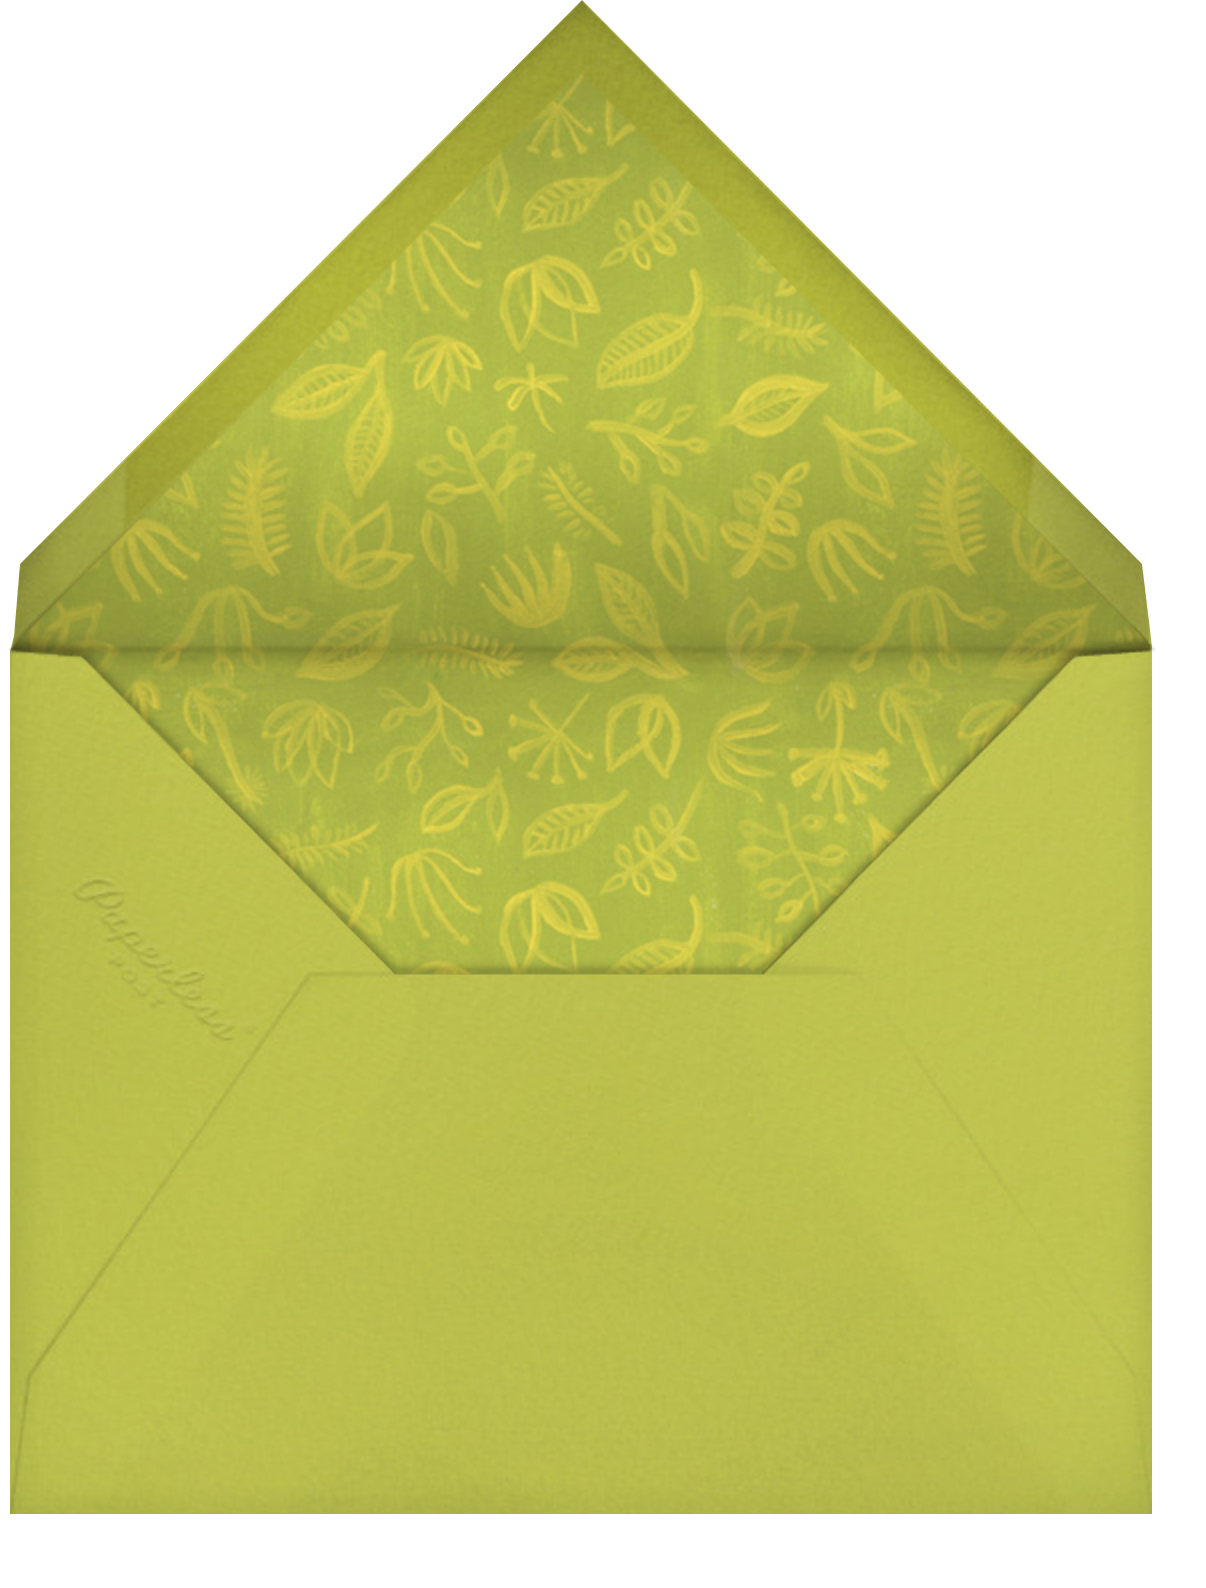 Perennial Love - Paperless Post - Mother's Day - envelope back